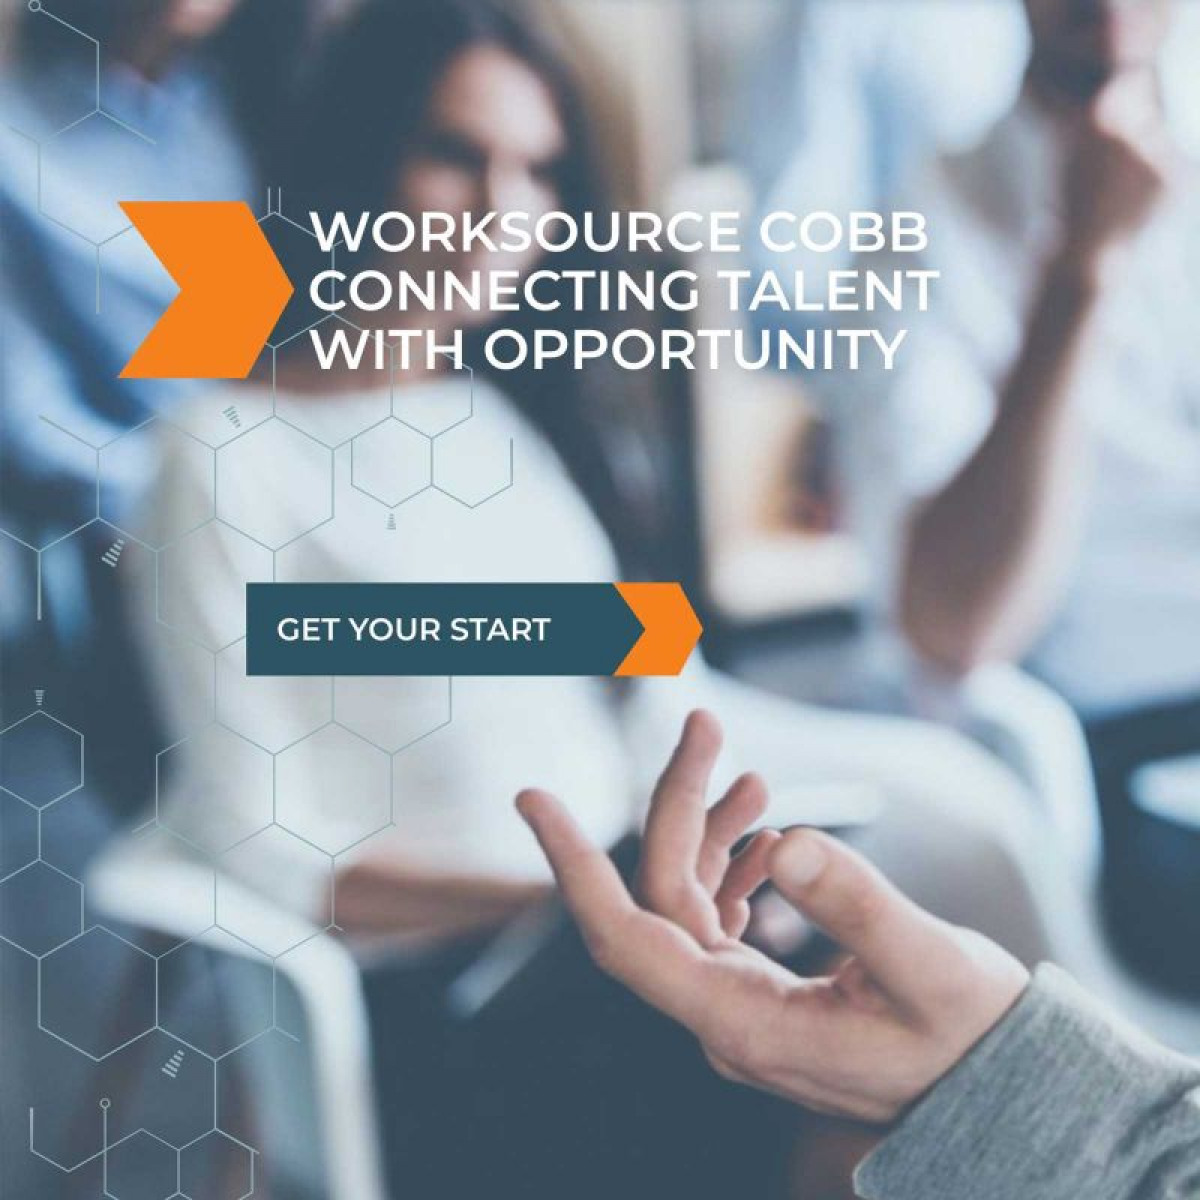 Image of website for WorkSource Cobb